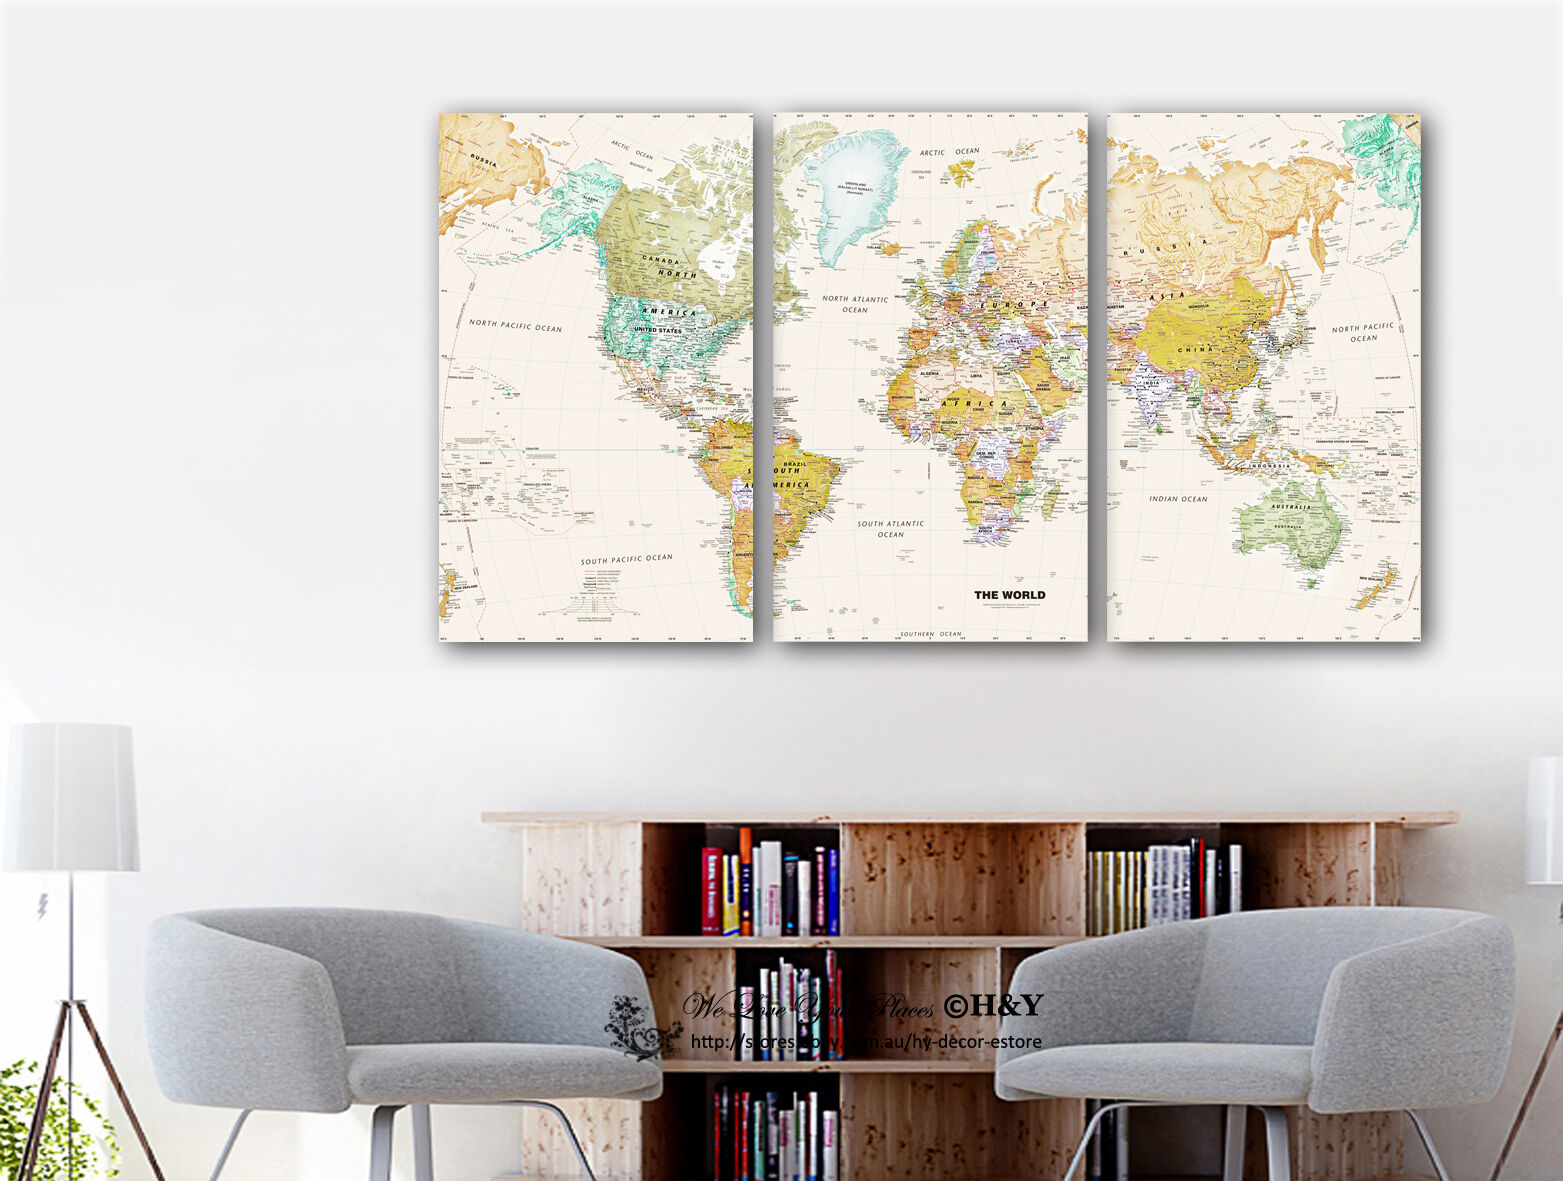 Map Wall Decor Diy: Set Of 3 World Map Stretched Canvas Prints Framed Wall Art